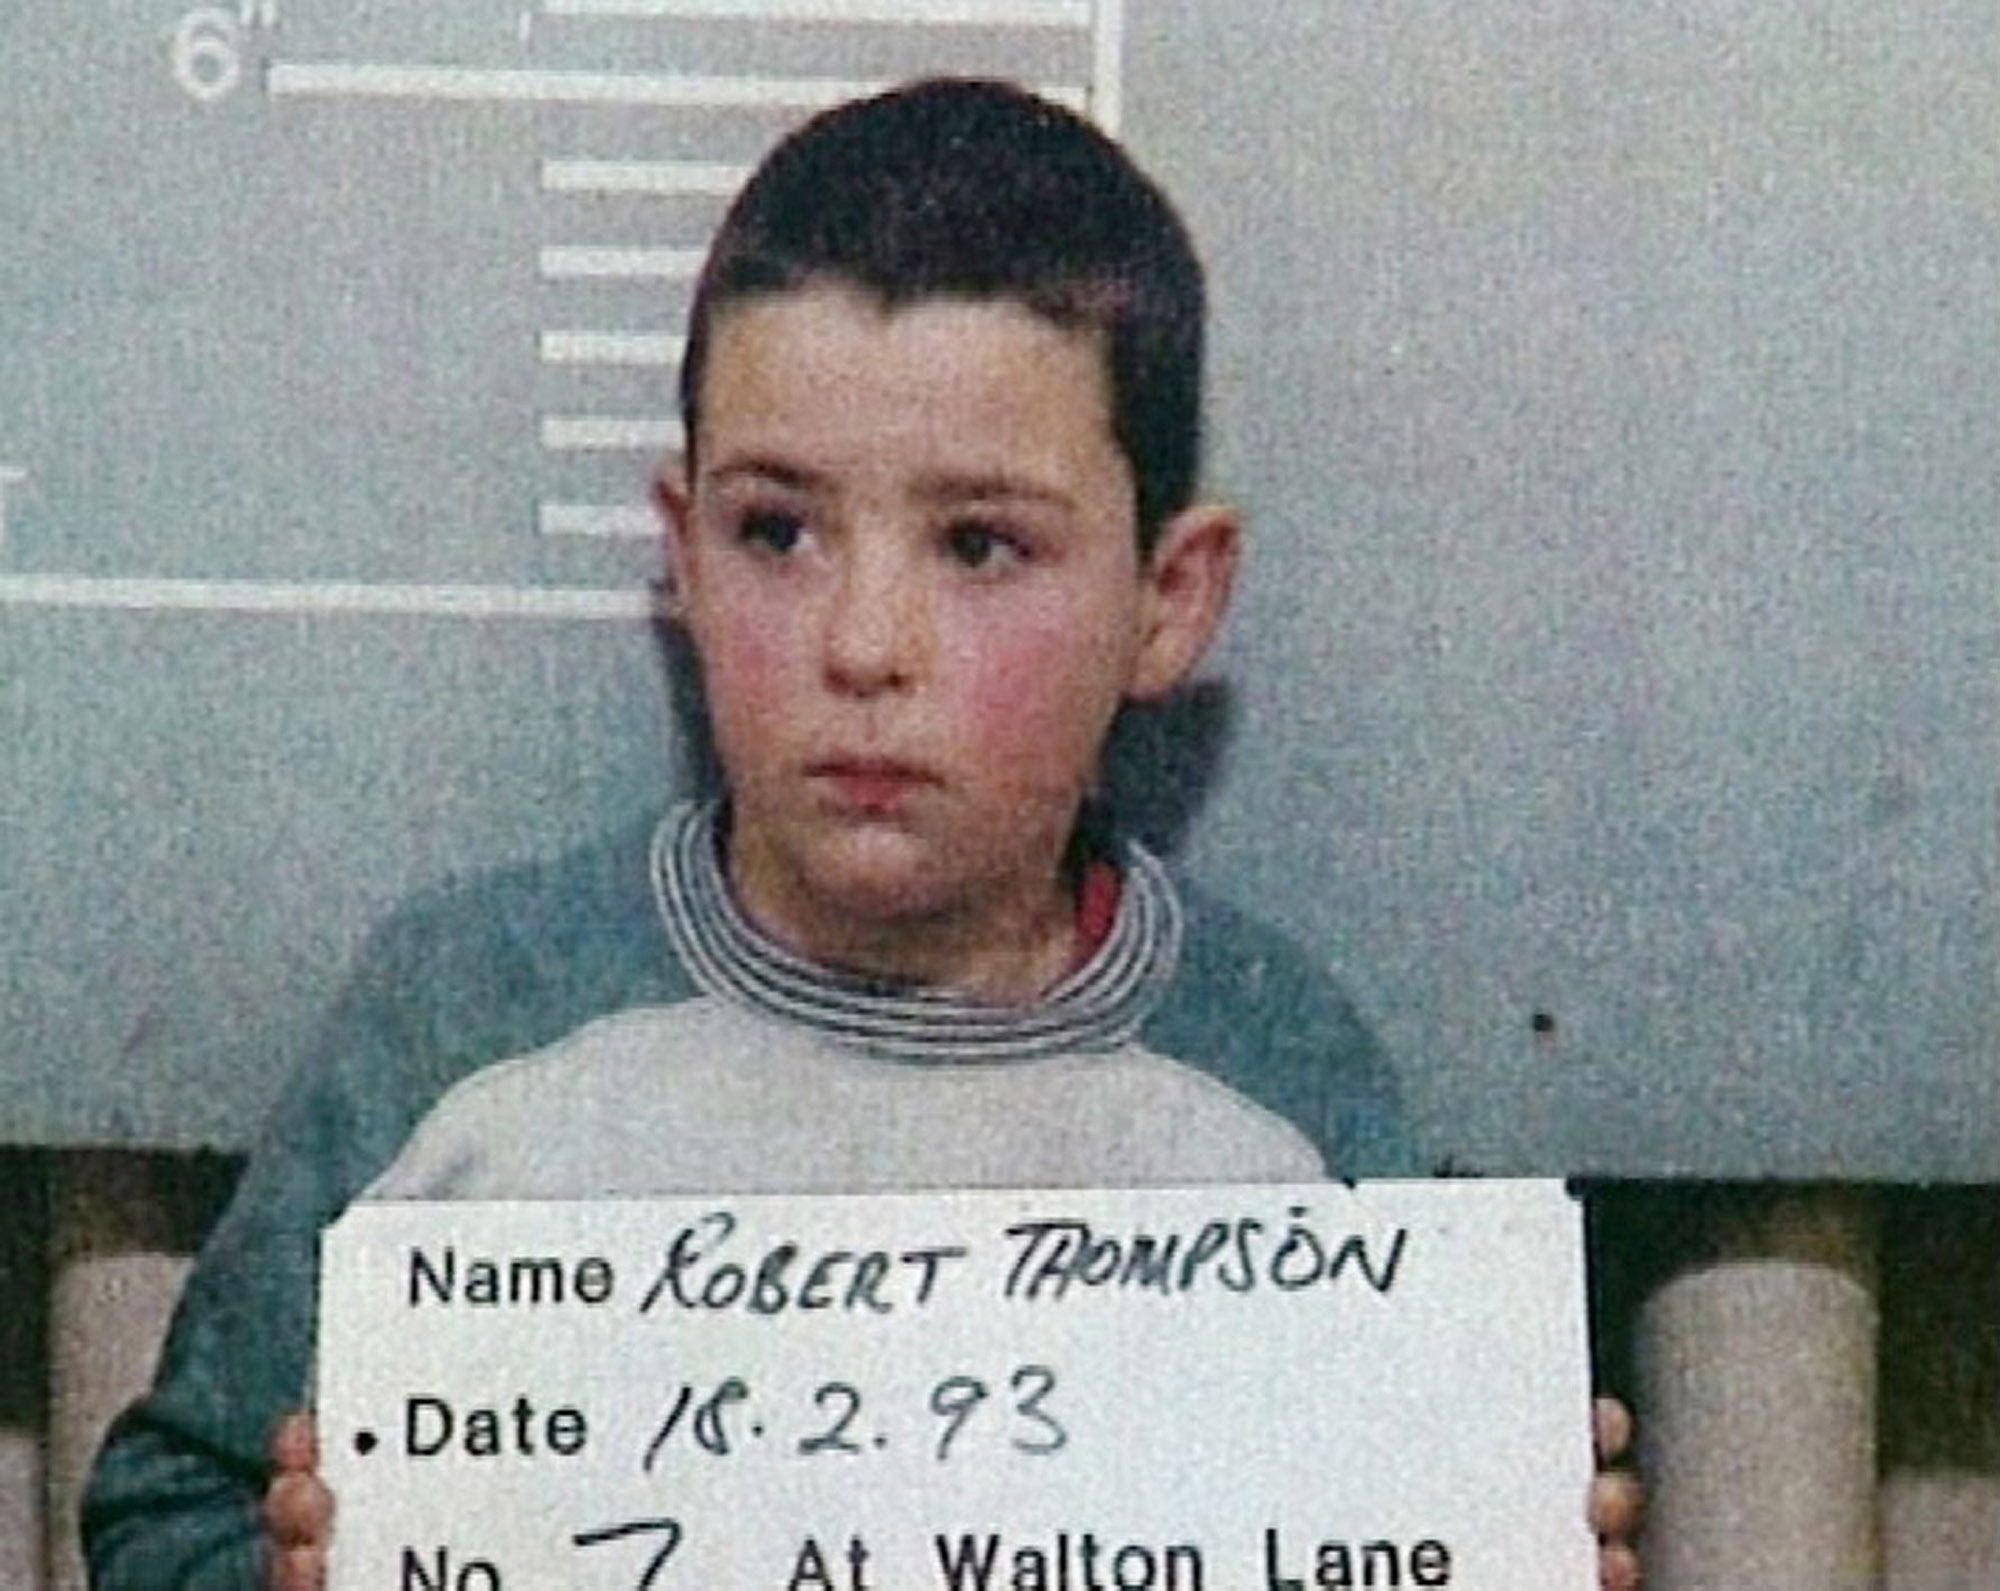 A mug shot of 10-year-old Robert Thompson, who along with Jon Venables, abducted, tortured and killed 2-year-old James Buglar in 1993. (Image: Getty Images)